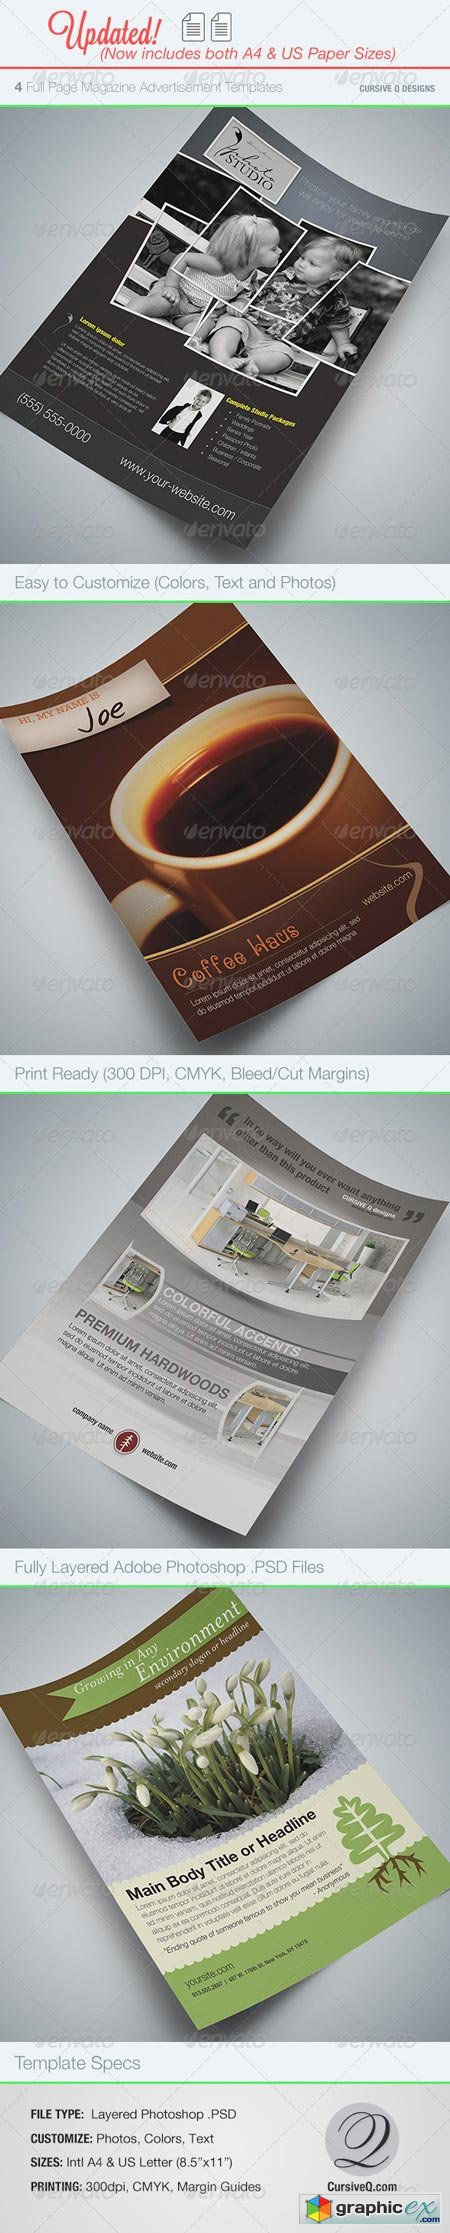 Full Page Magazine Ad or Flyer Templates 76133